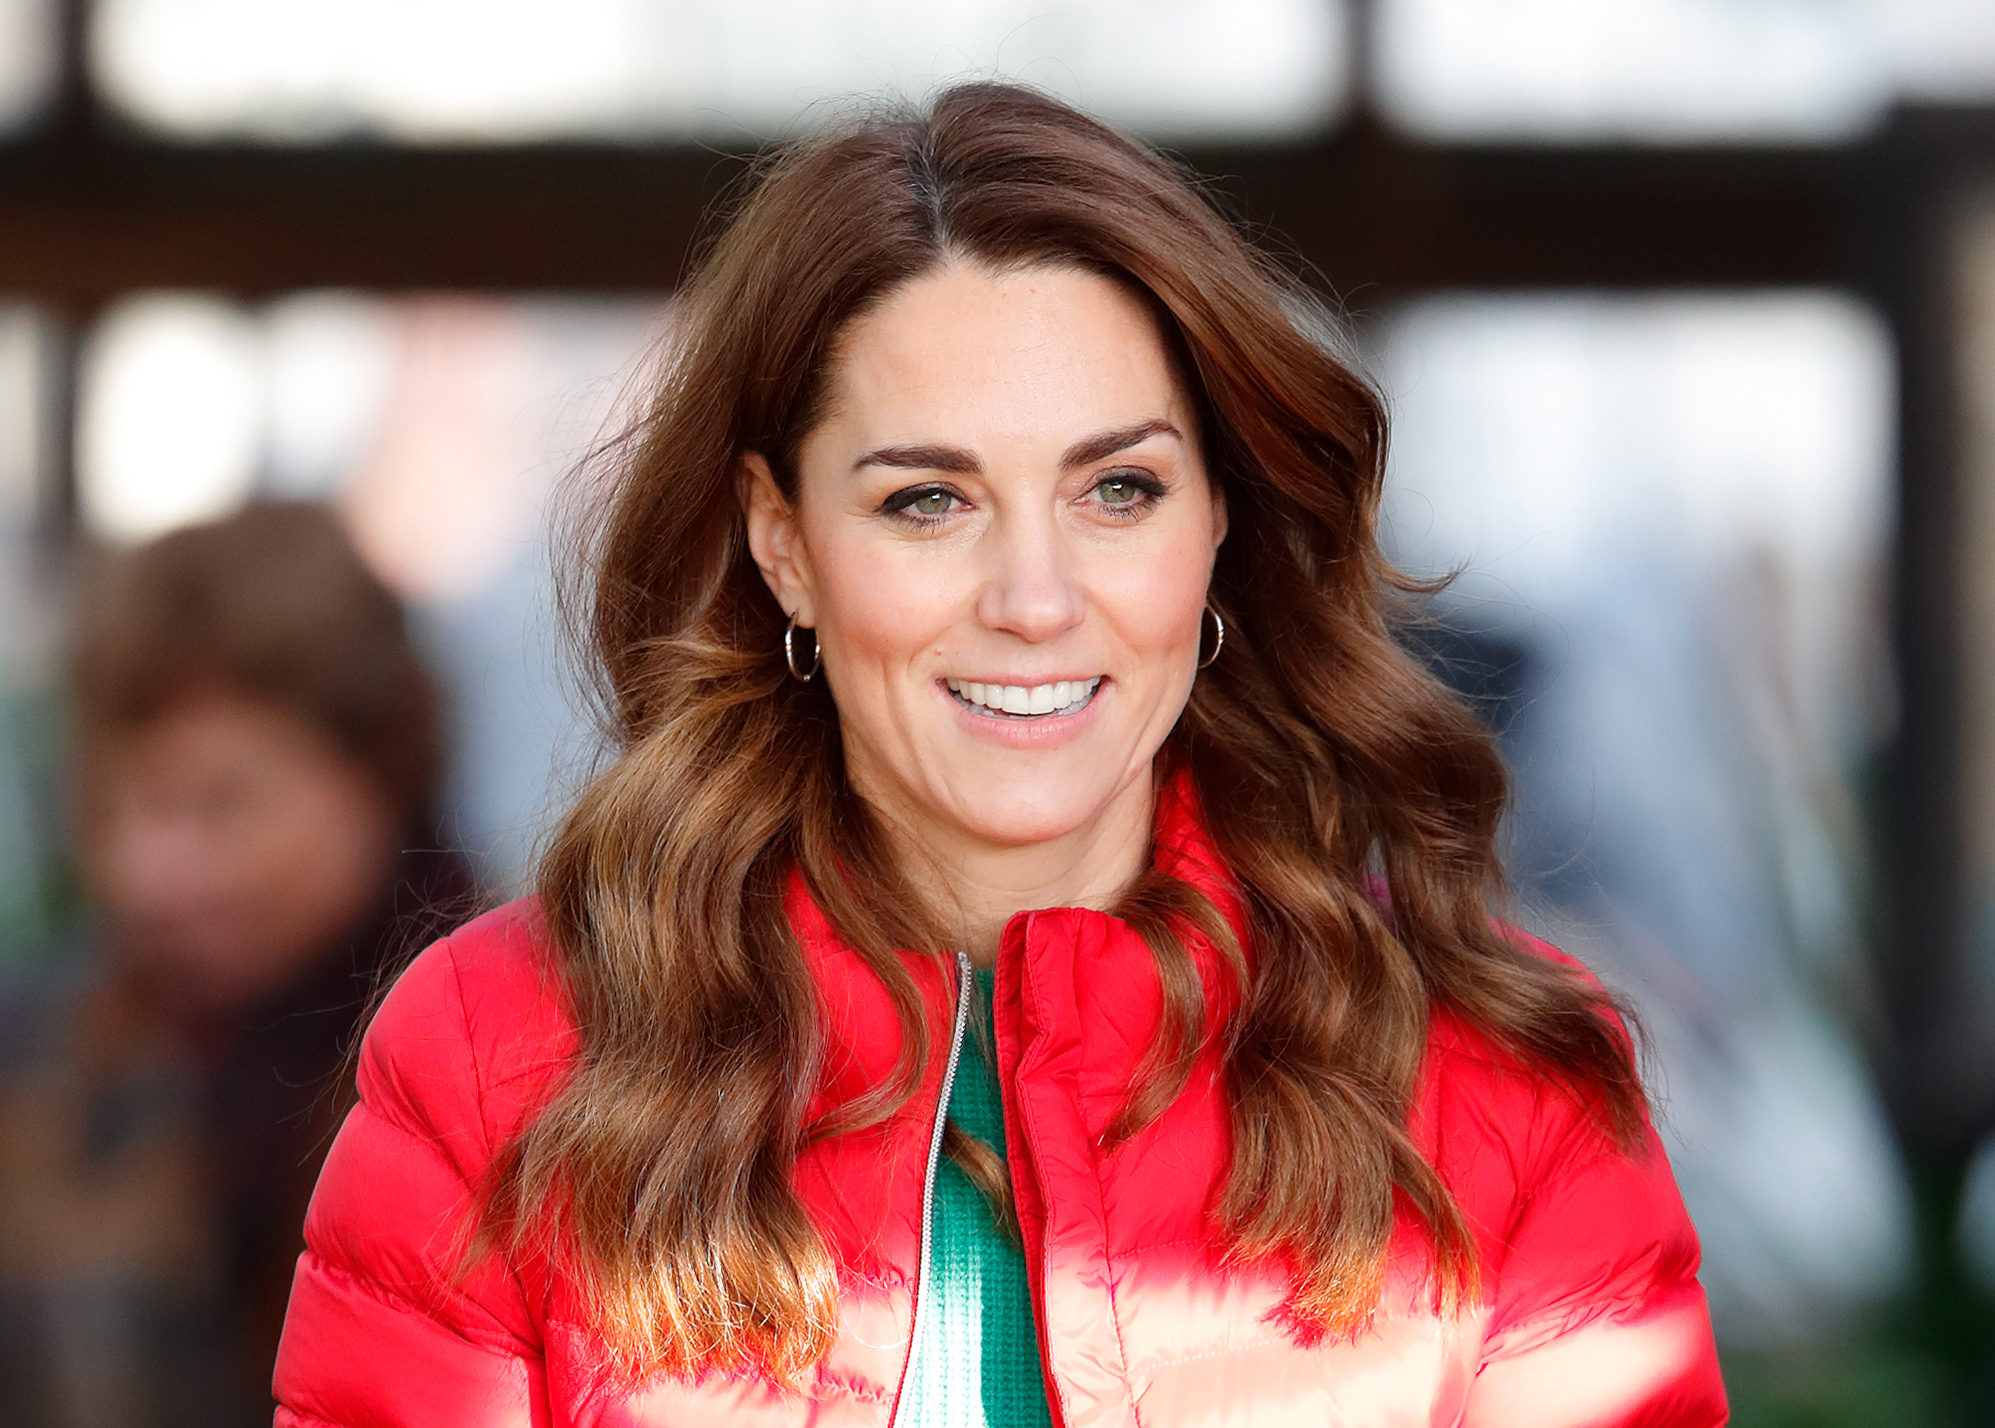 Kate Middleton has inherited something very special from the Queen